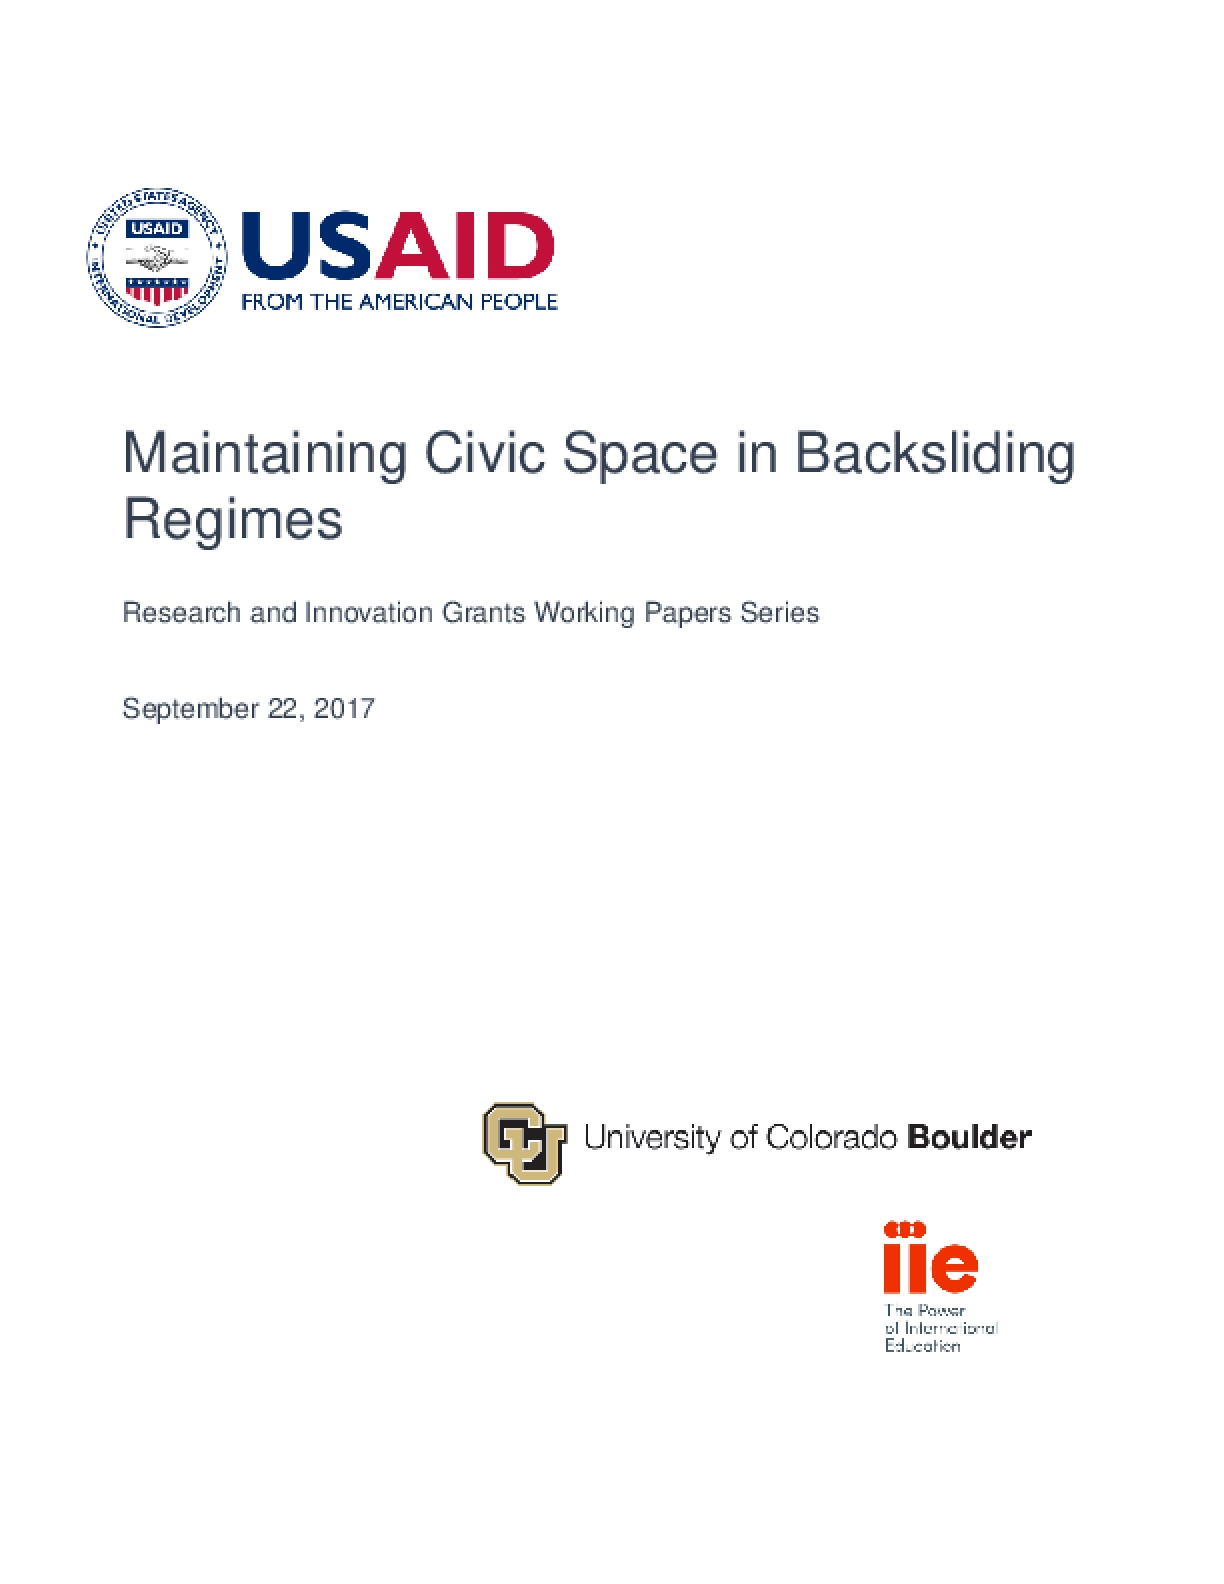 Maintaining Civic Space in Backsliding Regimes (2017)